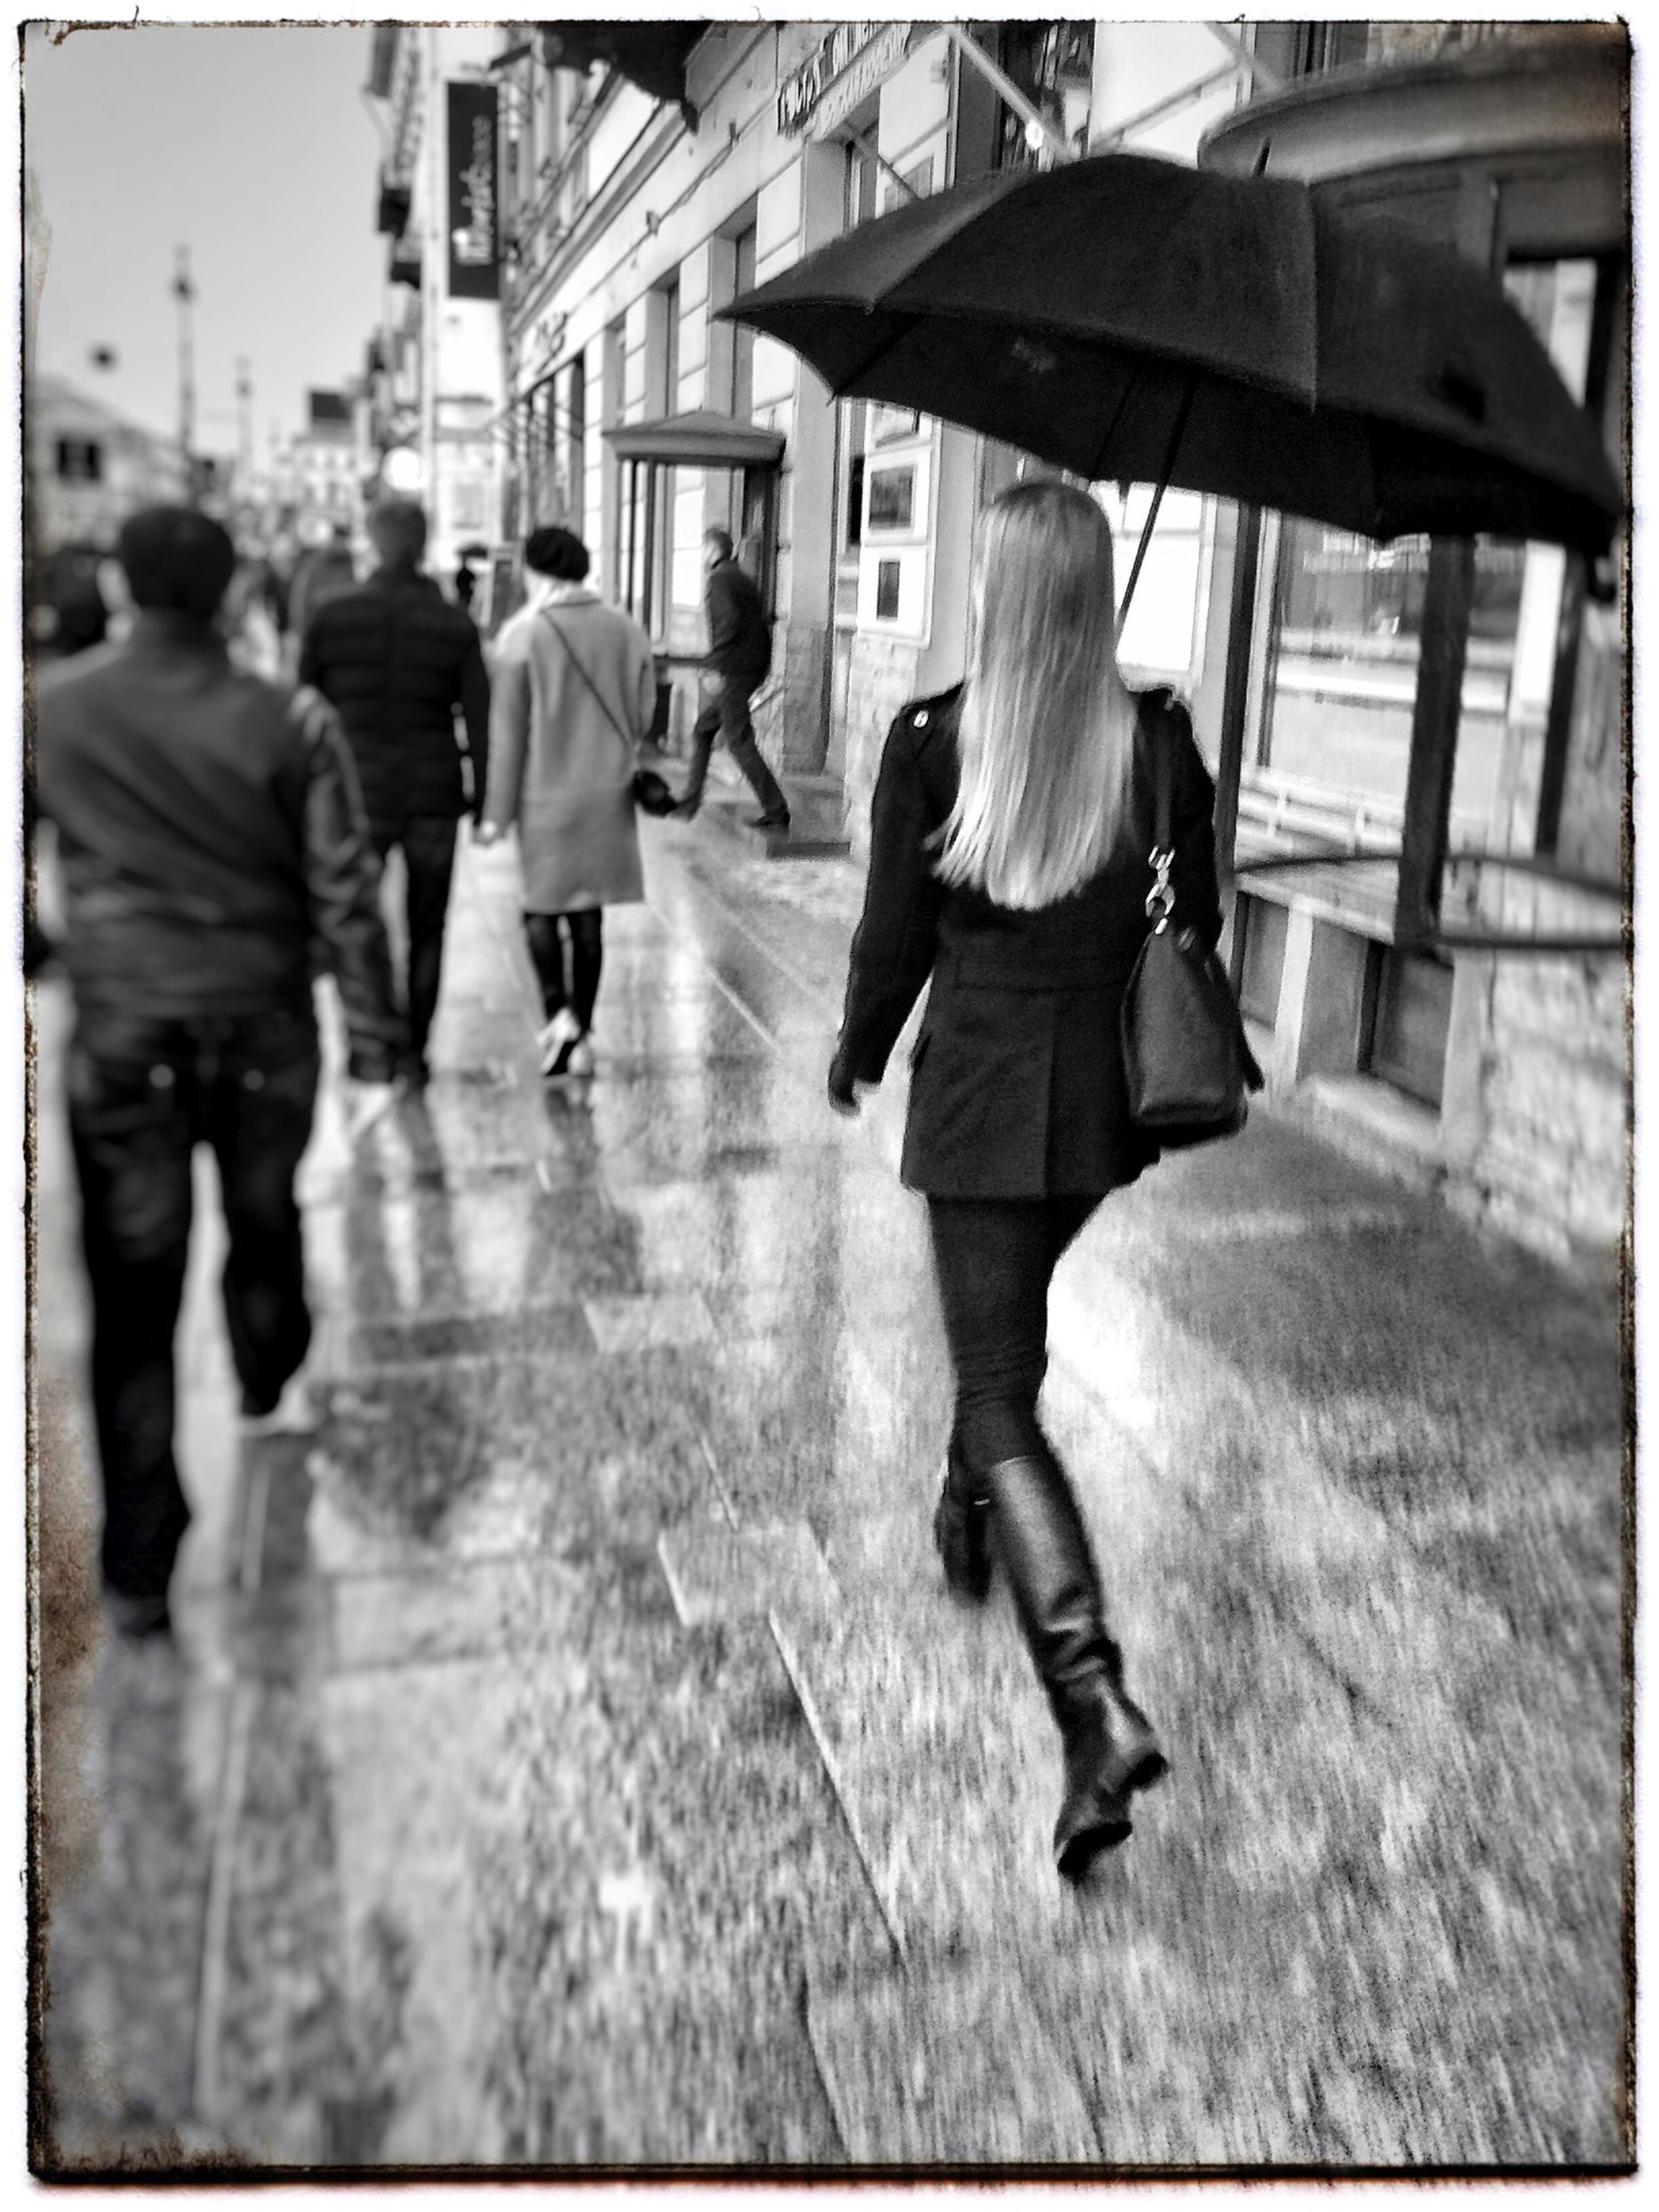 walking, lifestyles, transfer print, full length, street, person, men, rear view, leisure activity, auto post production filter, umbrella, city life, city, building exterior, casual clothing, built structure, architecture, rain, wet